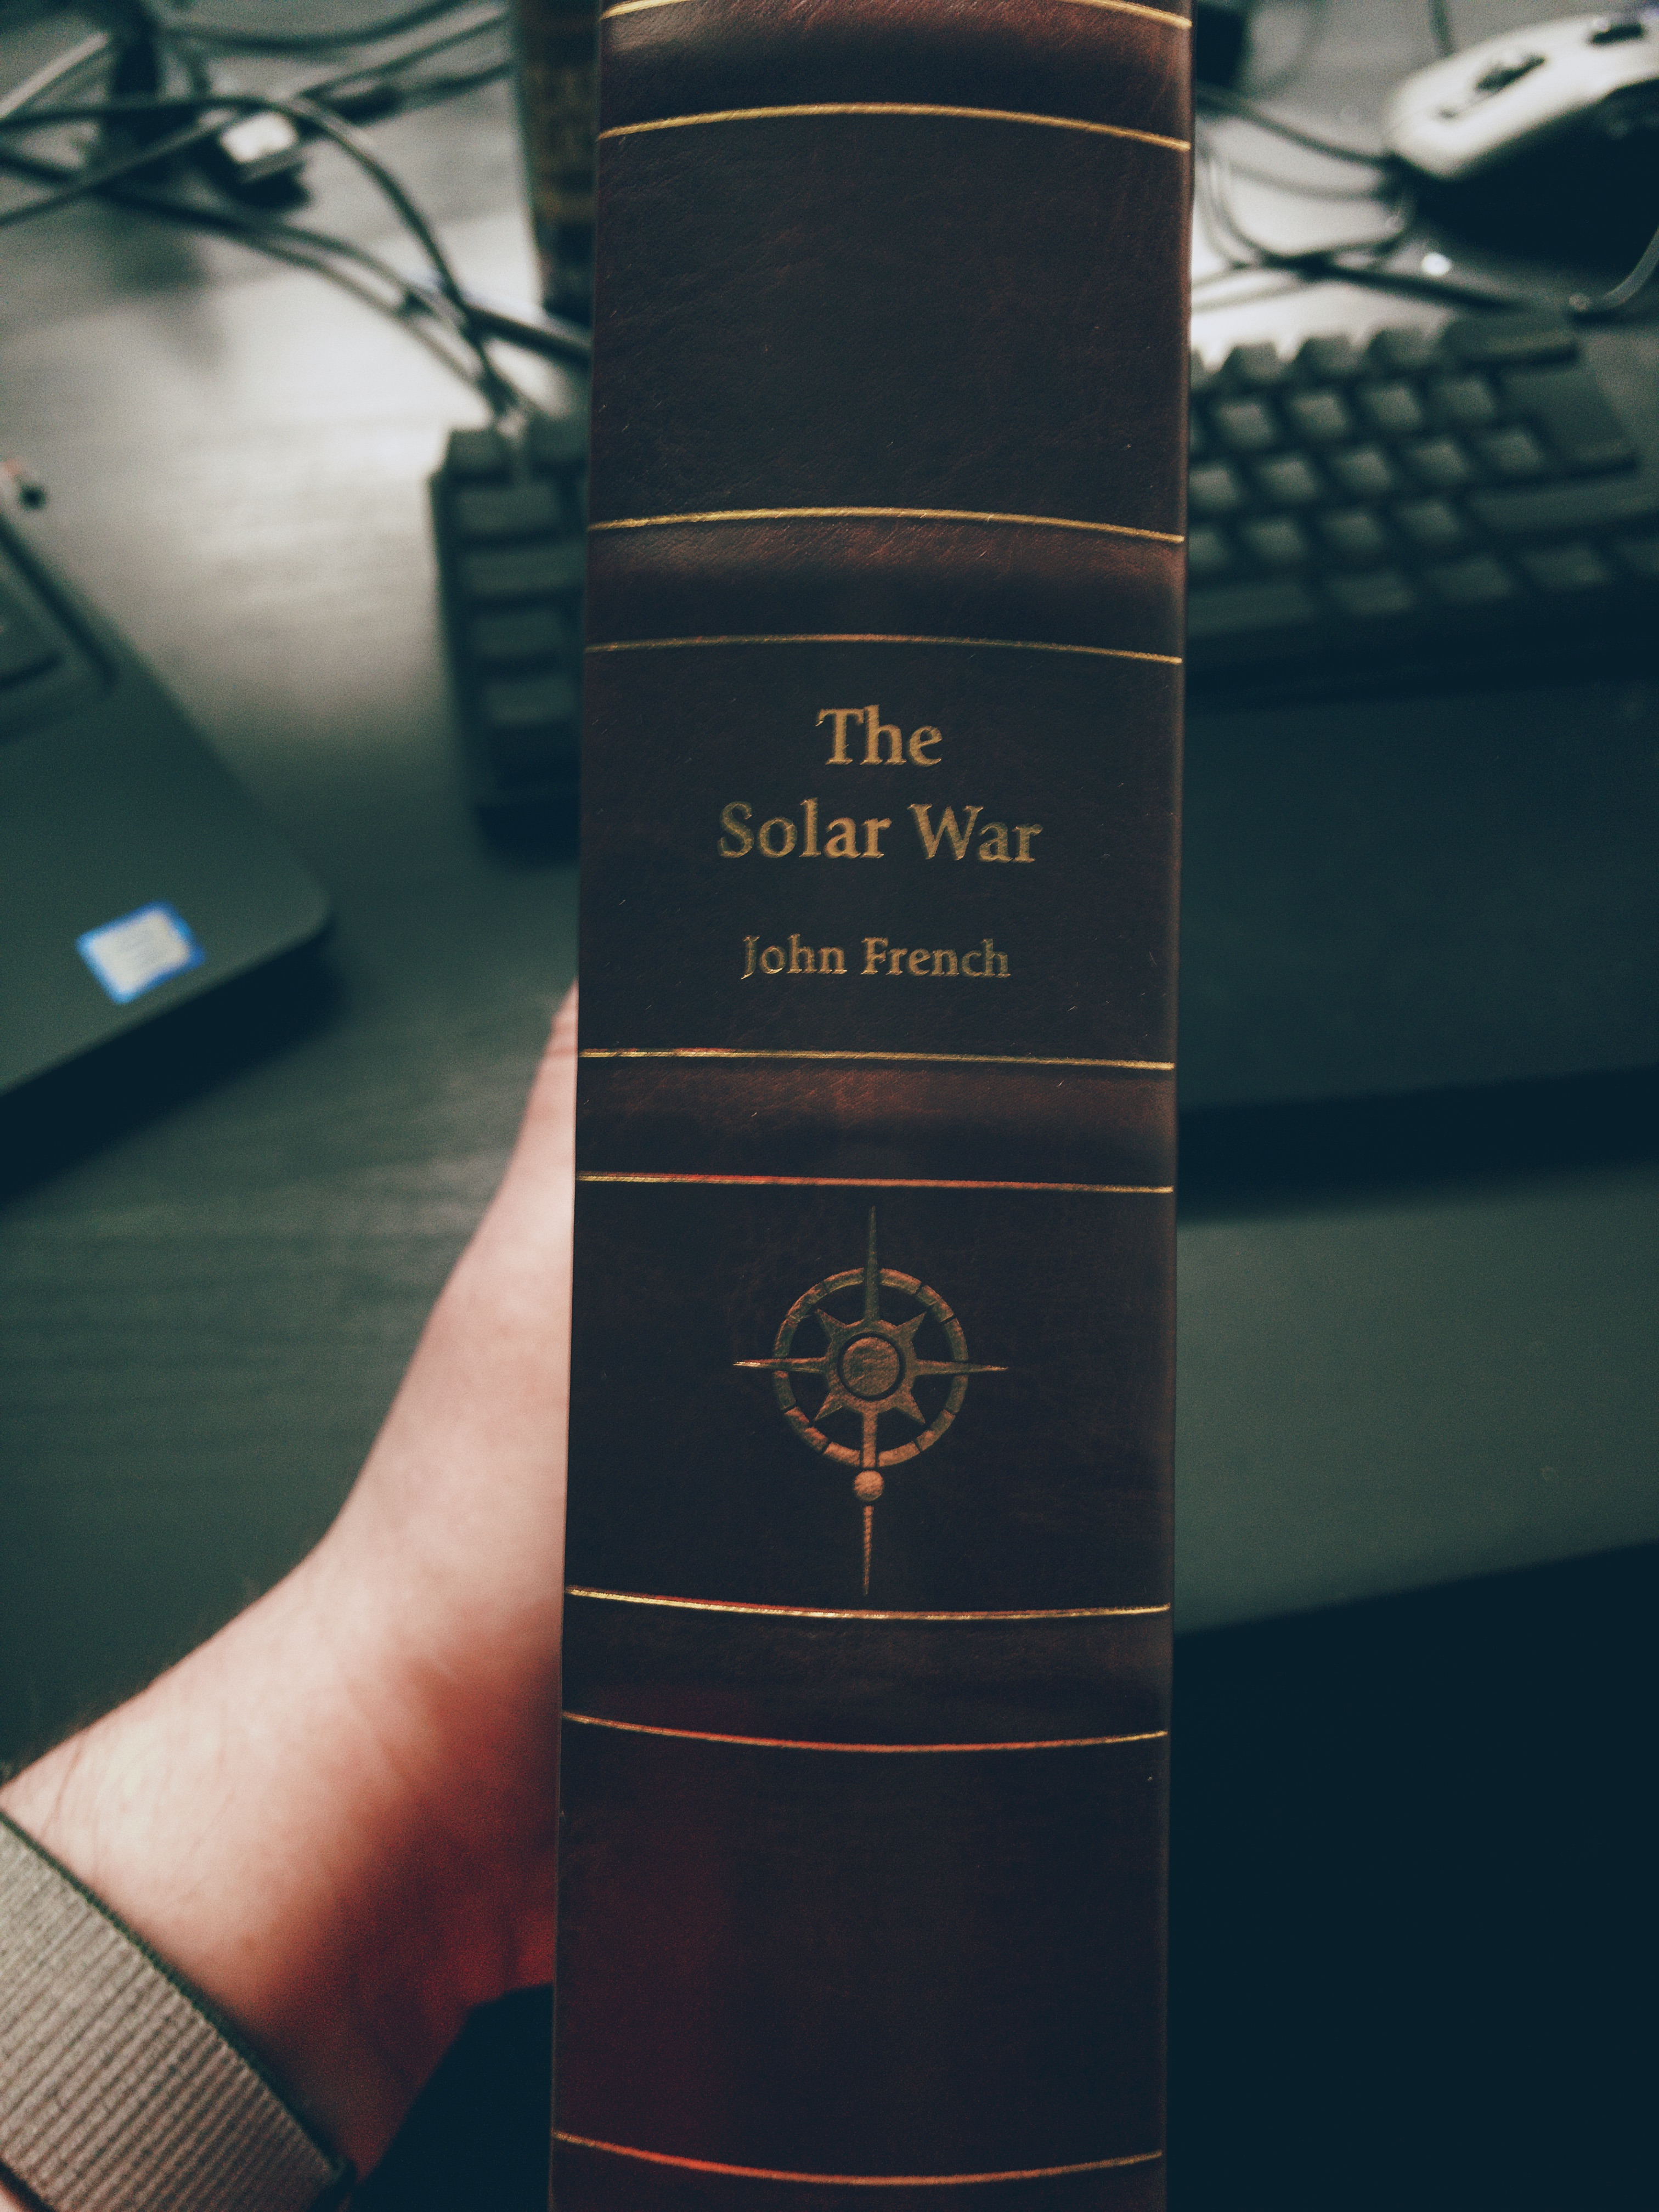 The Solar War spine